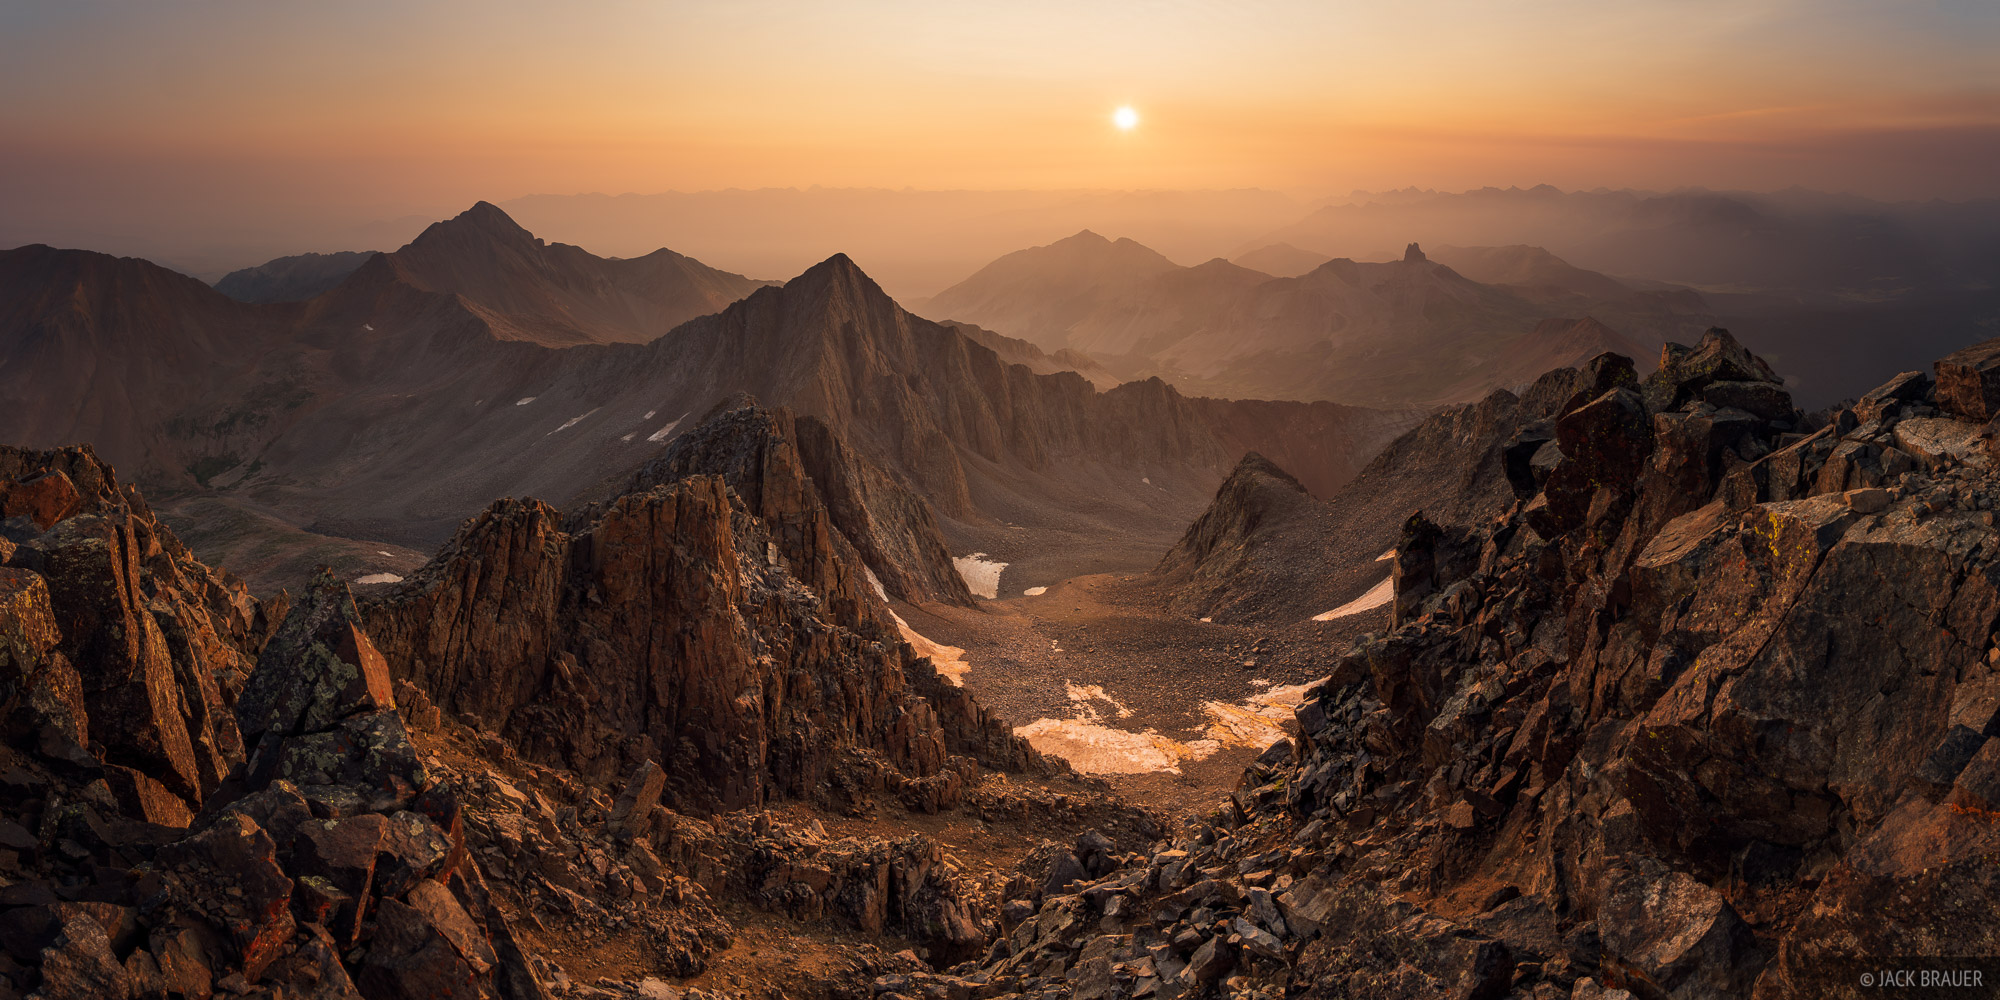 Colorado, Gladstone Peak, Lizard Head Wilderness, Mount Wilson, San Juan Mountains, Wilson Peak, wildfire, smoke, smoky, sunrise